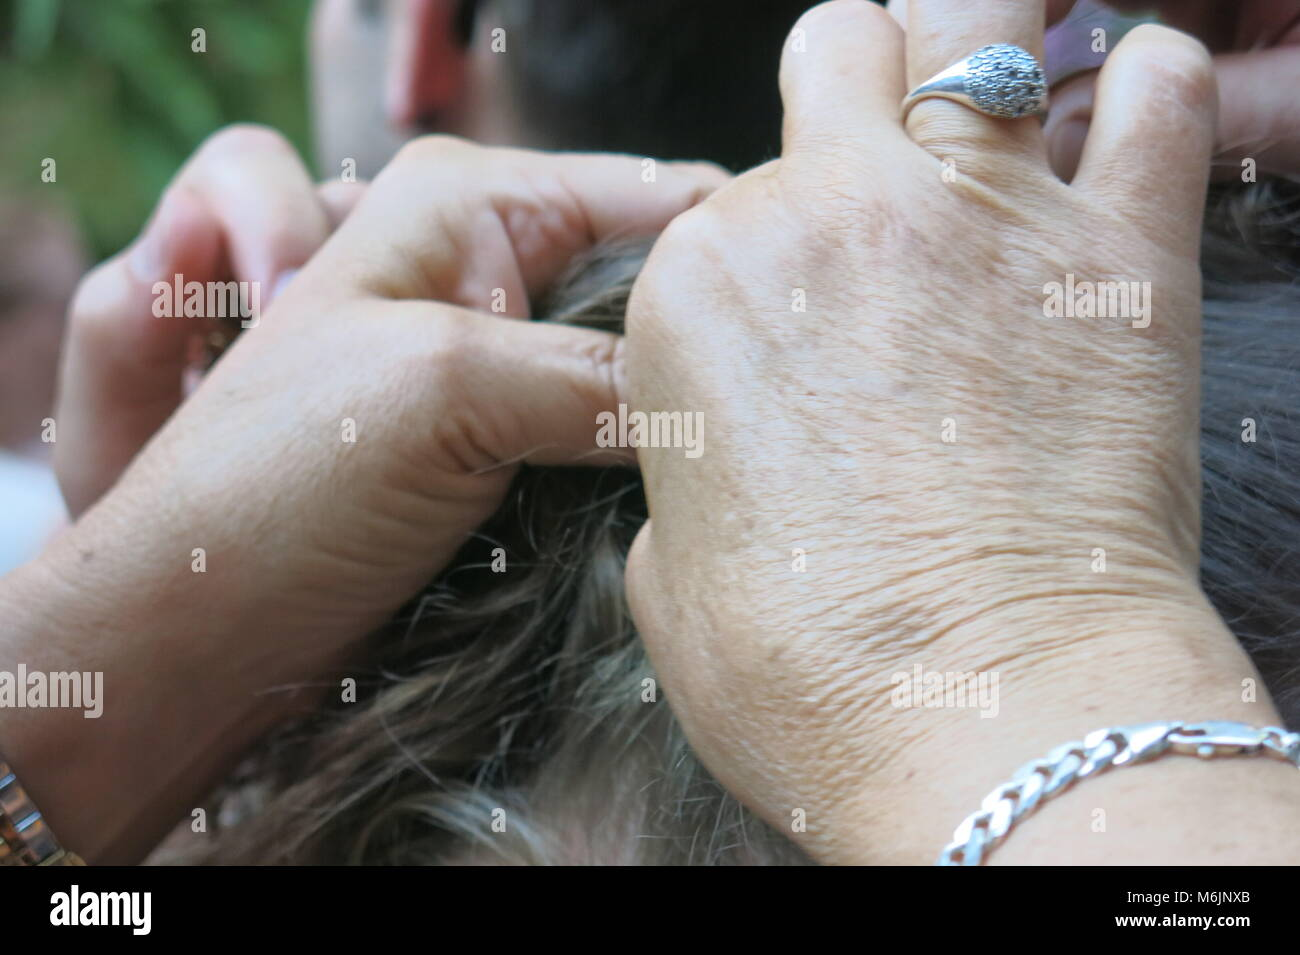 More than one pair of hands was needed to help unpin the bridesmaid's hair - Stock Image